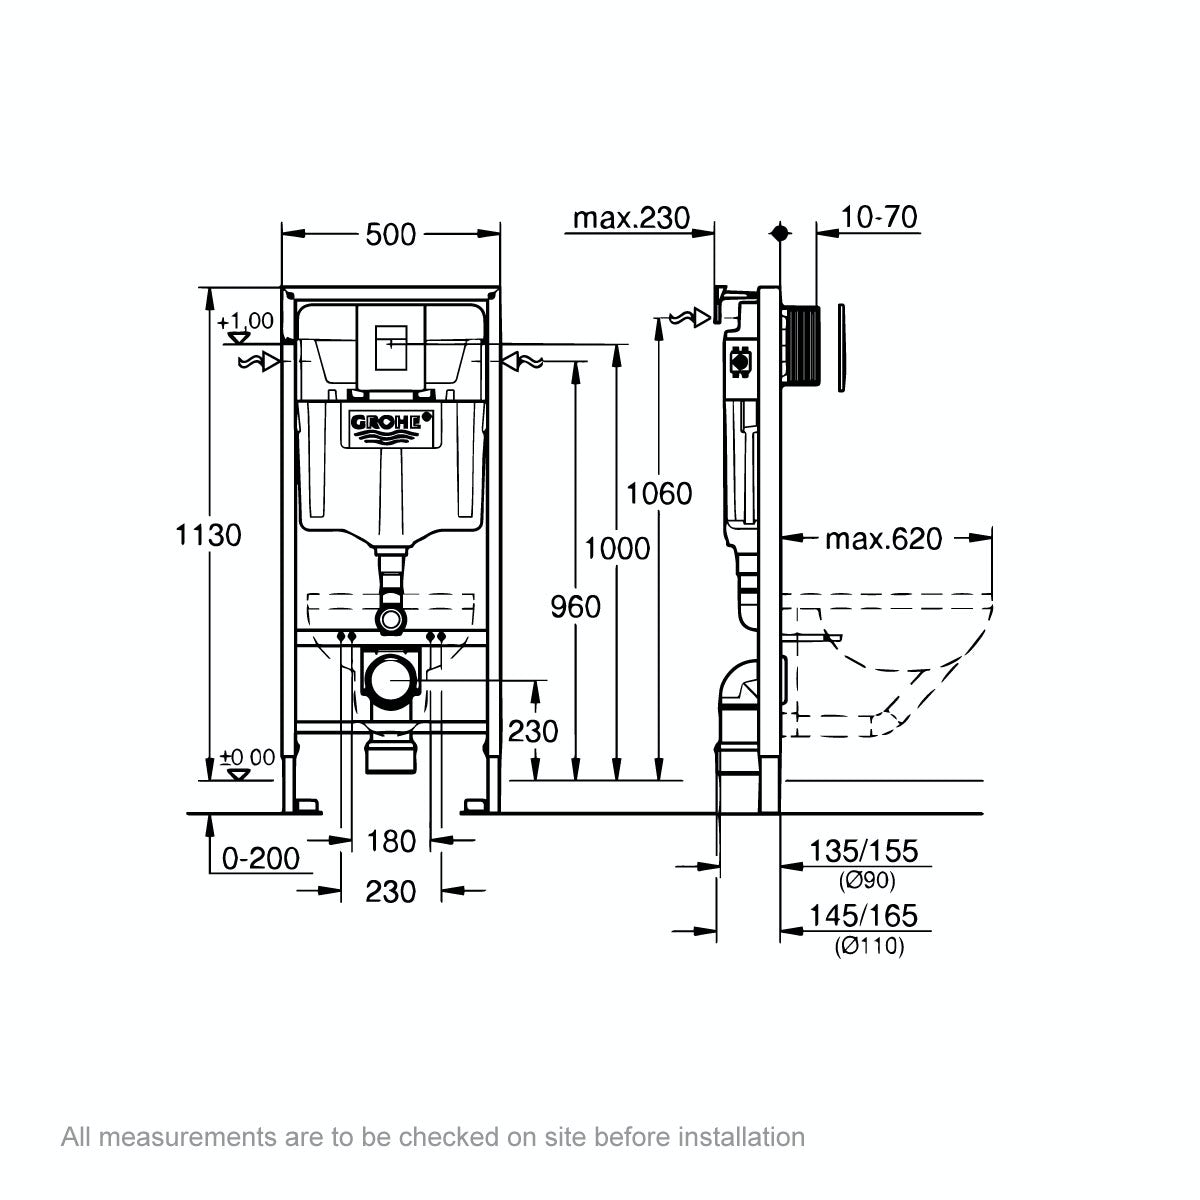 Dimensions for Grohe Rapid SL Set 3 in 1 wall mounting frame with square button Skate Cosmopolitan push plate 1.13m